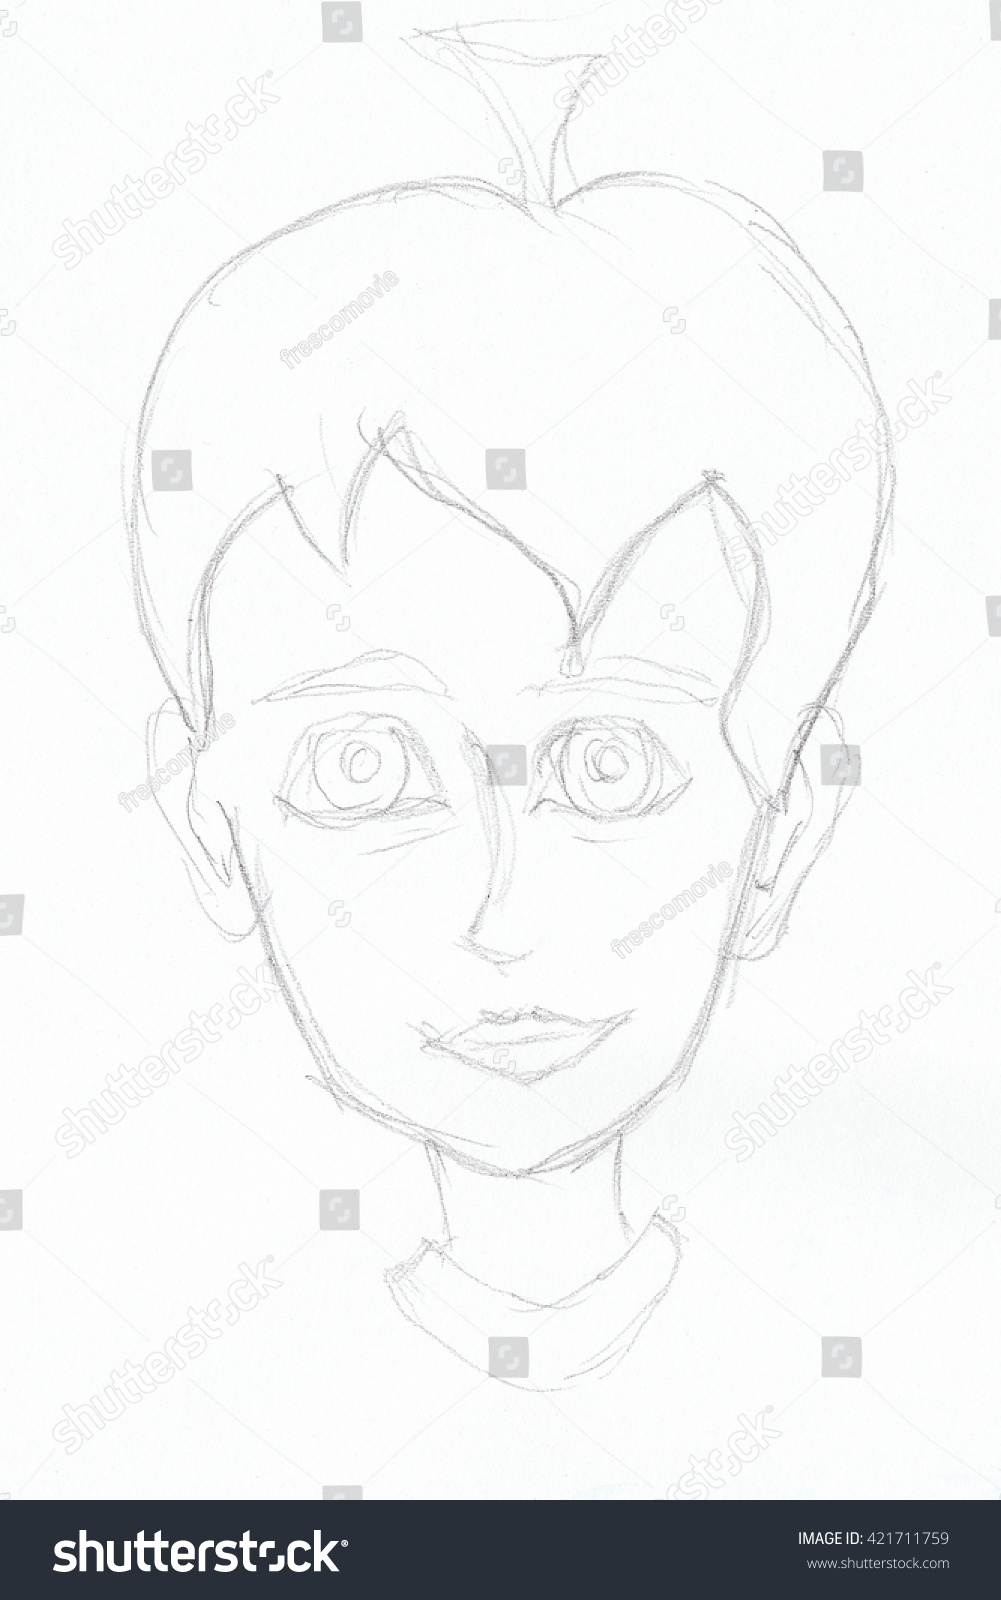 Pencil sketch of boy hand drawn illustration on white paper